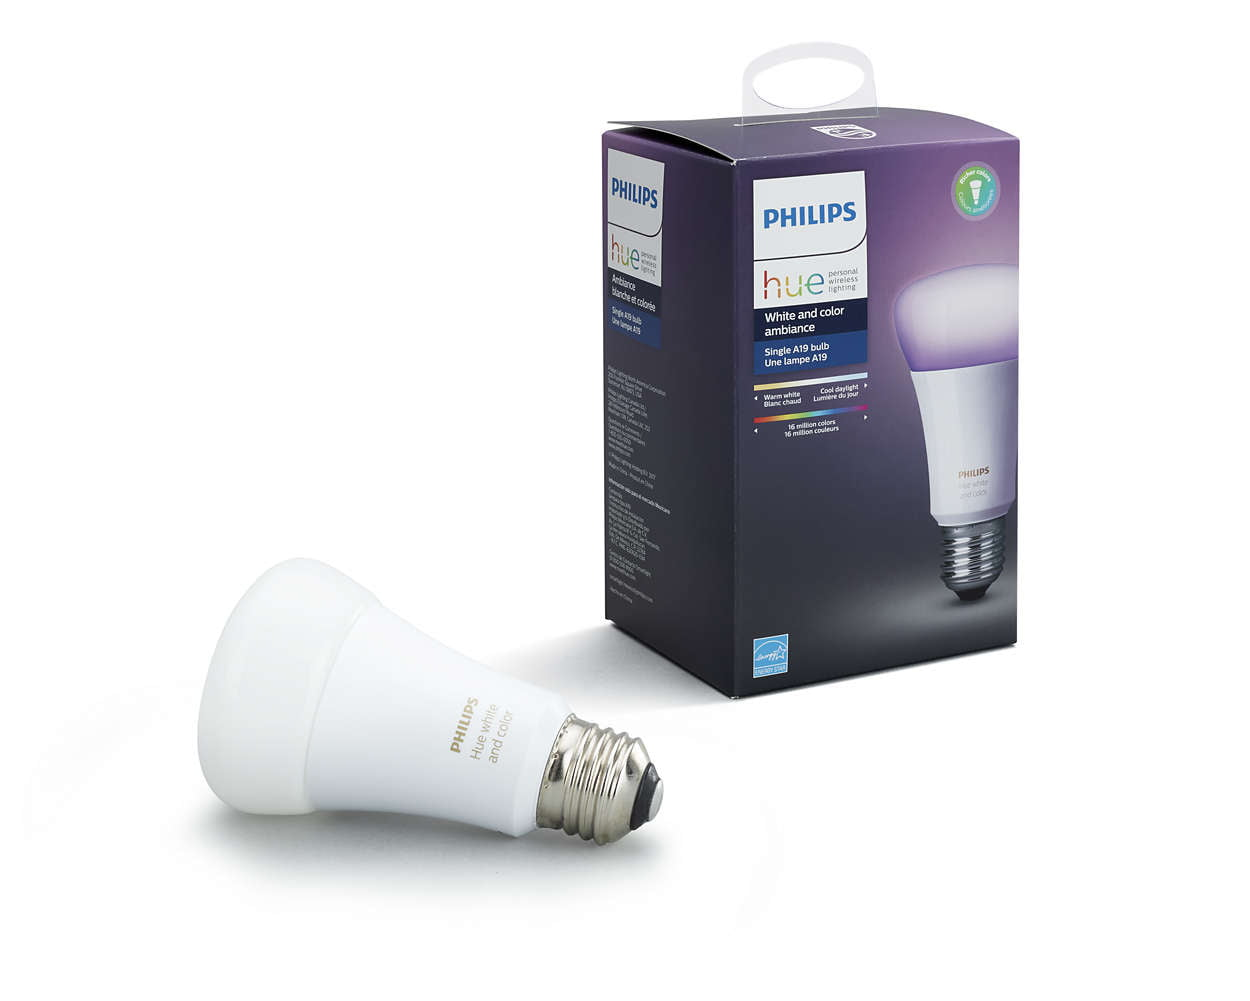 471960 Philips Hue Gen 3 60W A19 White /& Color Ambiance Smart 4 Bulb Kit